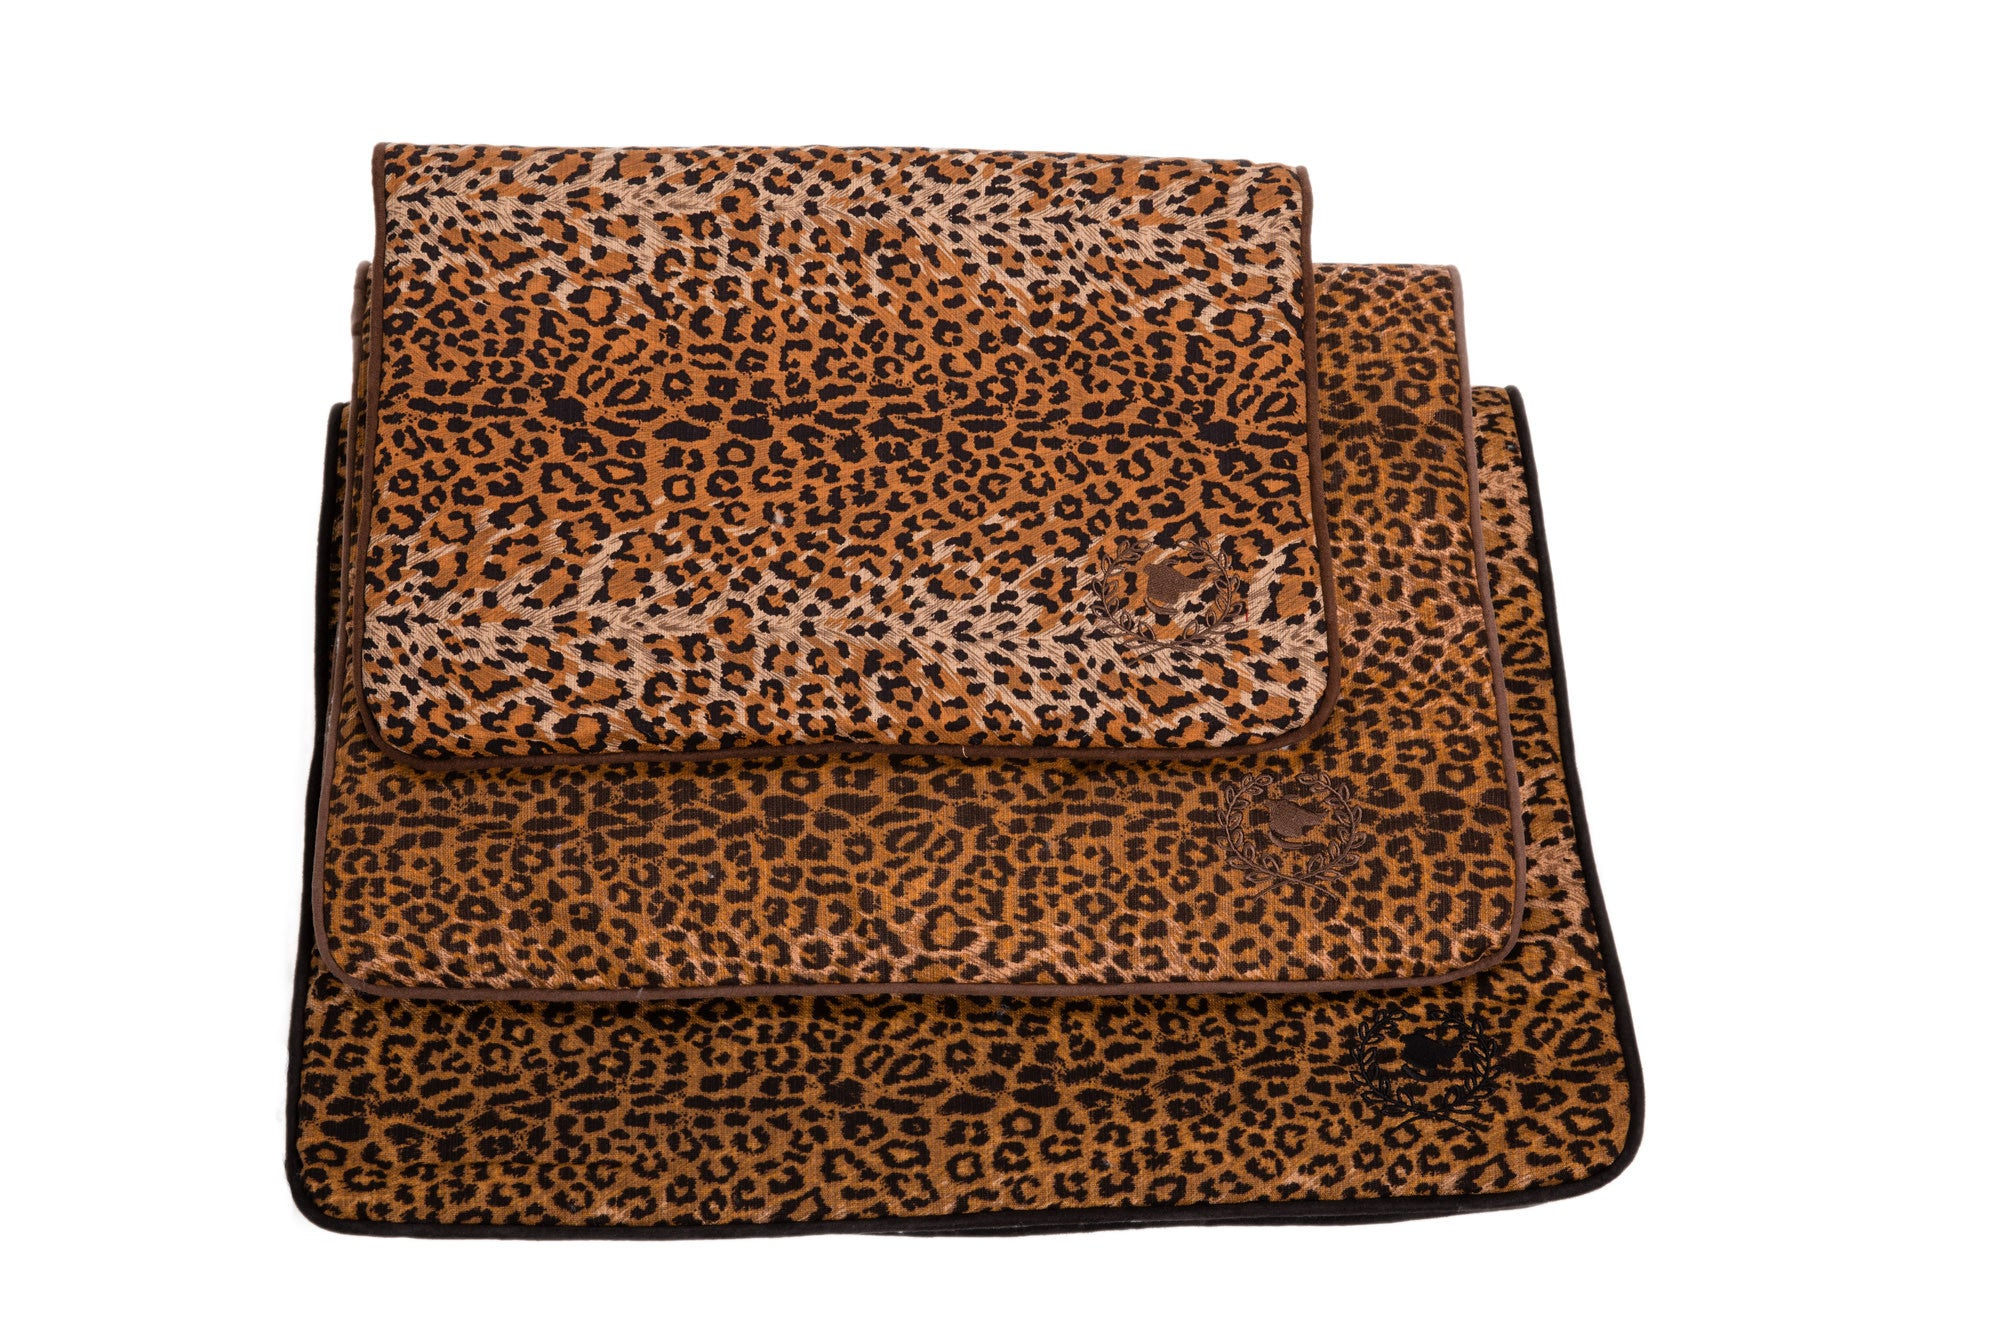 Canine Styles - Crate Mat - Leopard Pattern